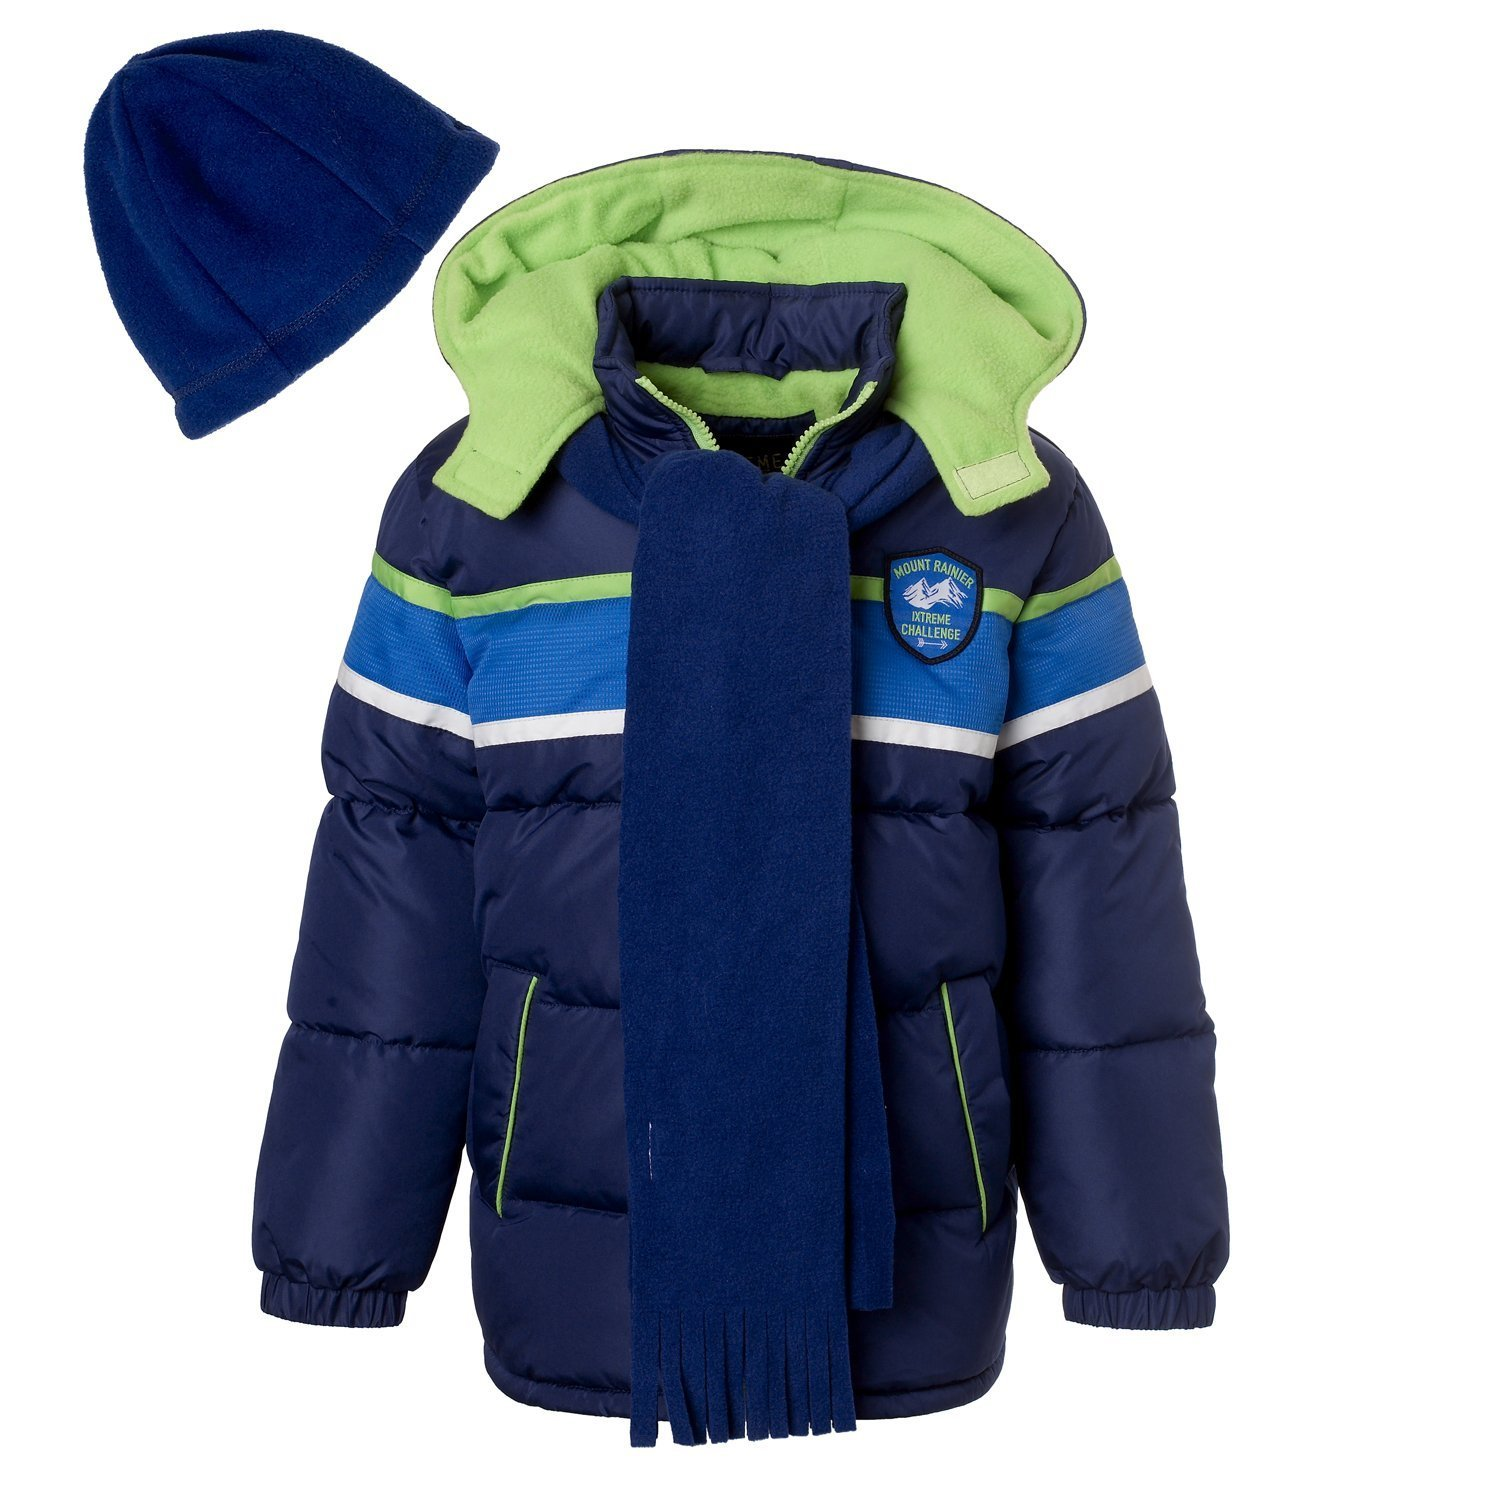 iXtreme Little Boys Hooded Winter Puffer Bubble Jacket Coat with Hat & Scarf, Navy, 2T